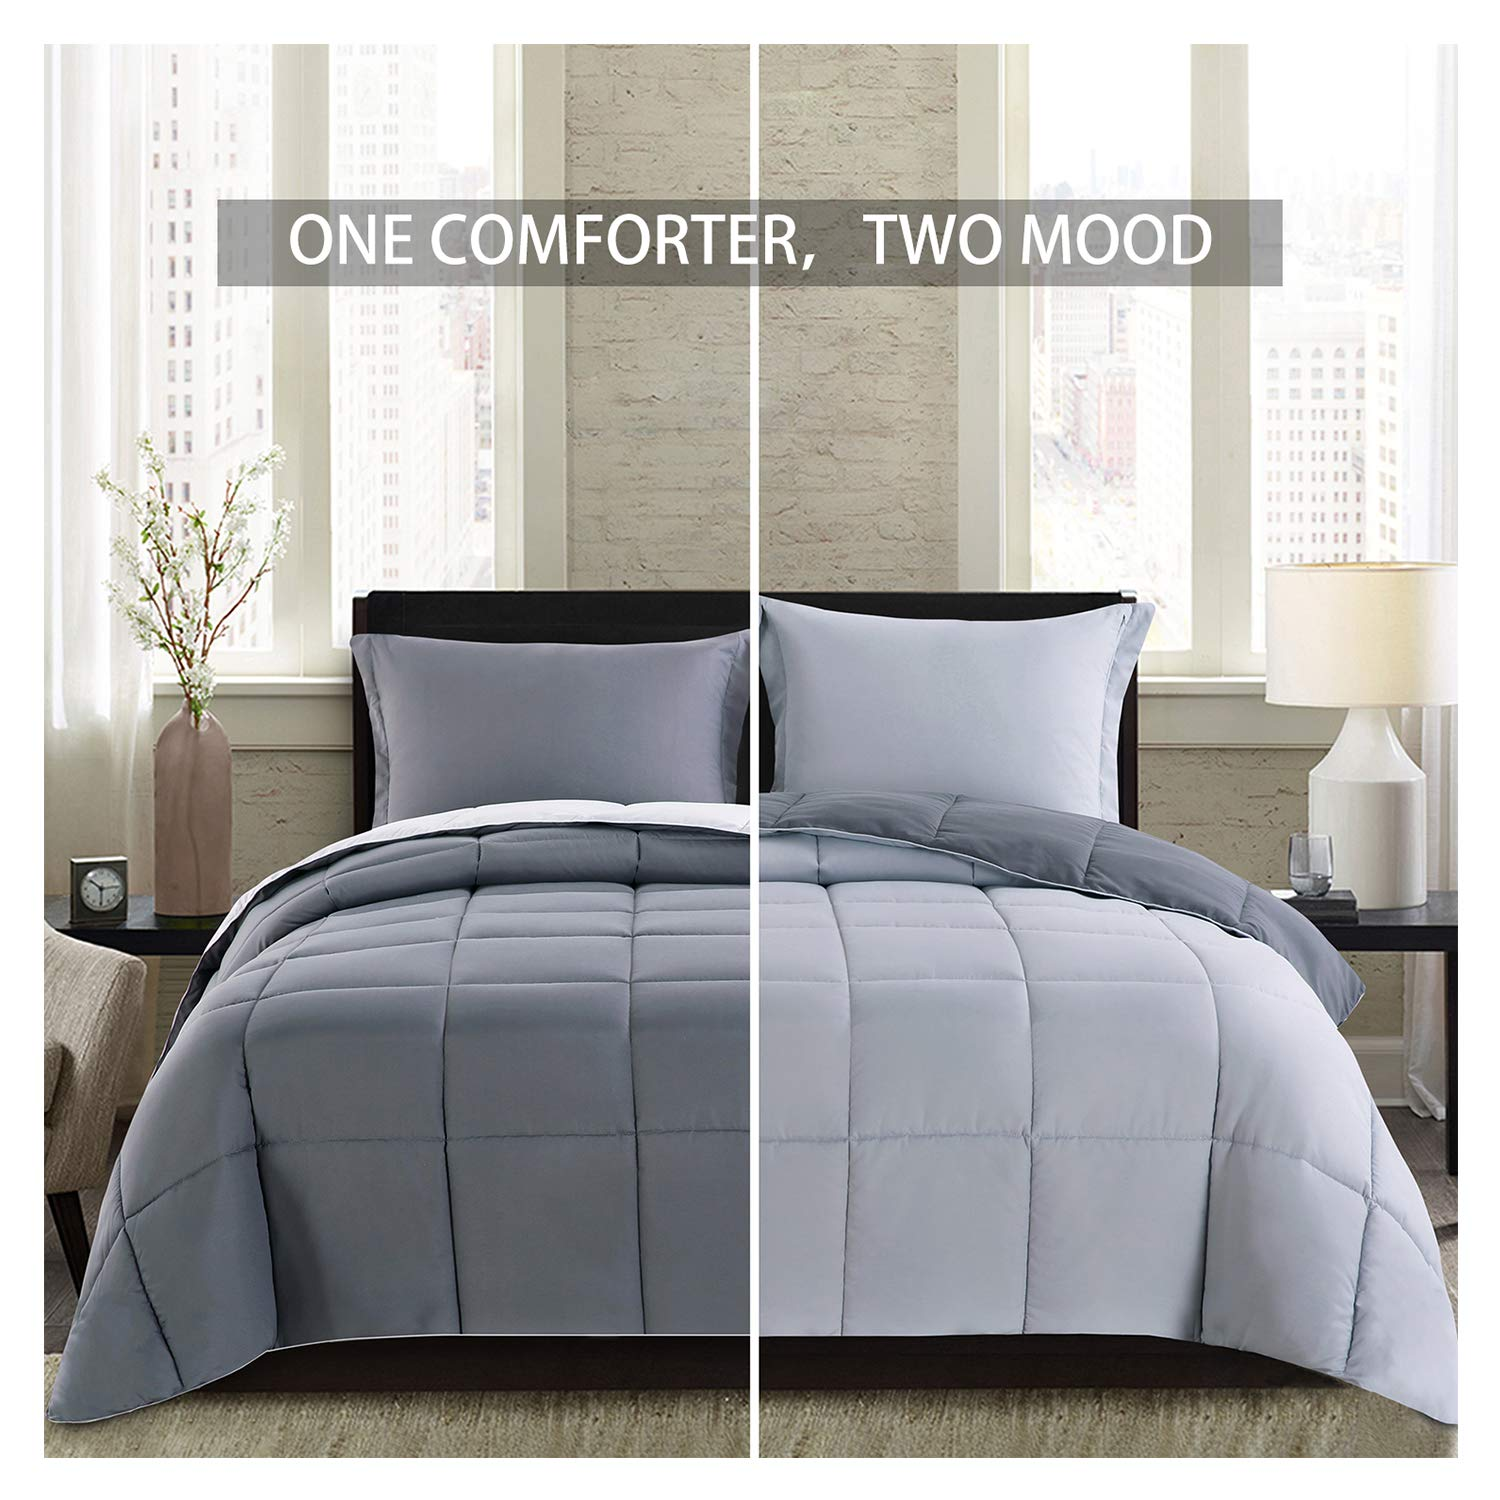 Homelike Moment Lightweight Comforter Set